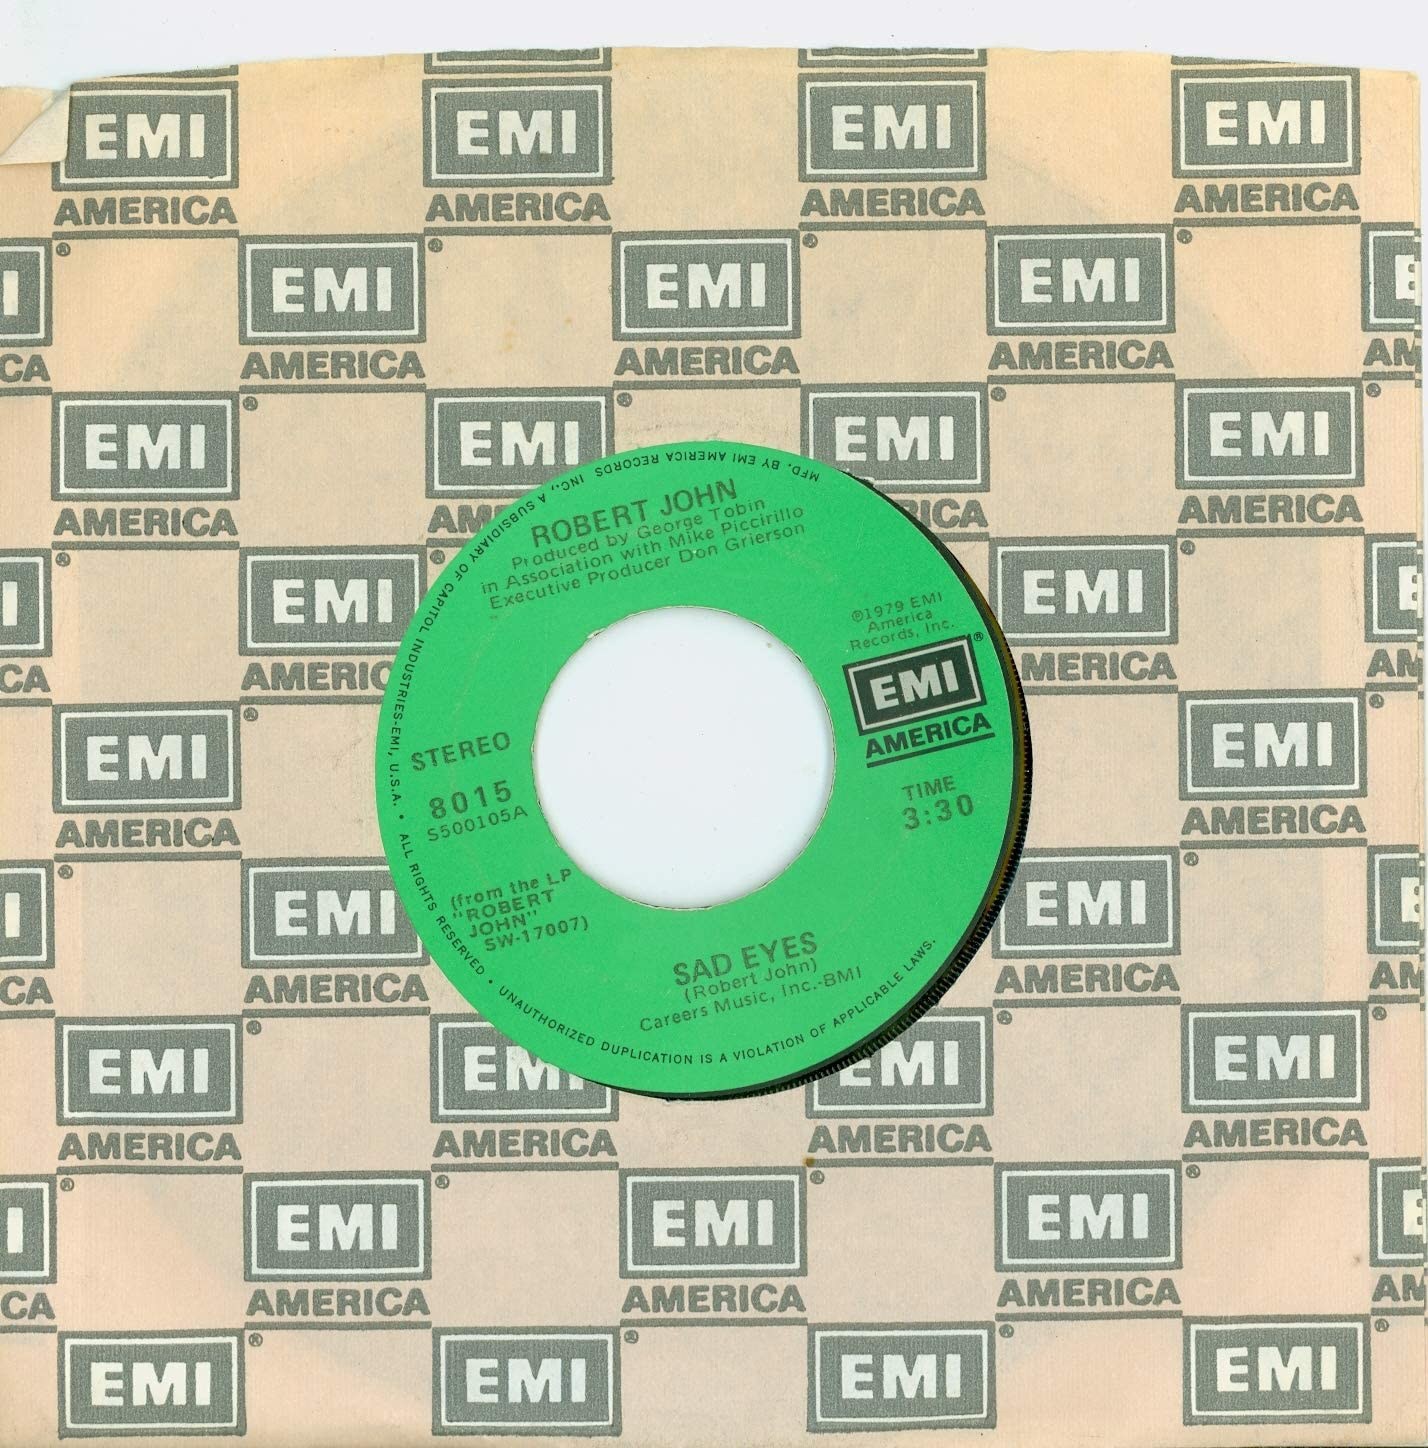 Sad Eyes Am I Ever Gonna Hold John You Ame Max 46% OFF EMI Again Robert Raleigh Mall -